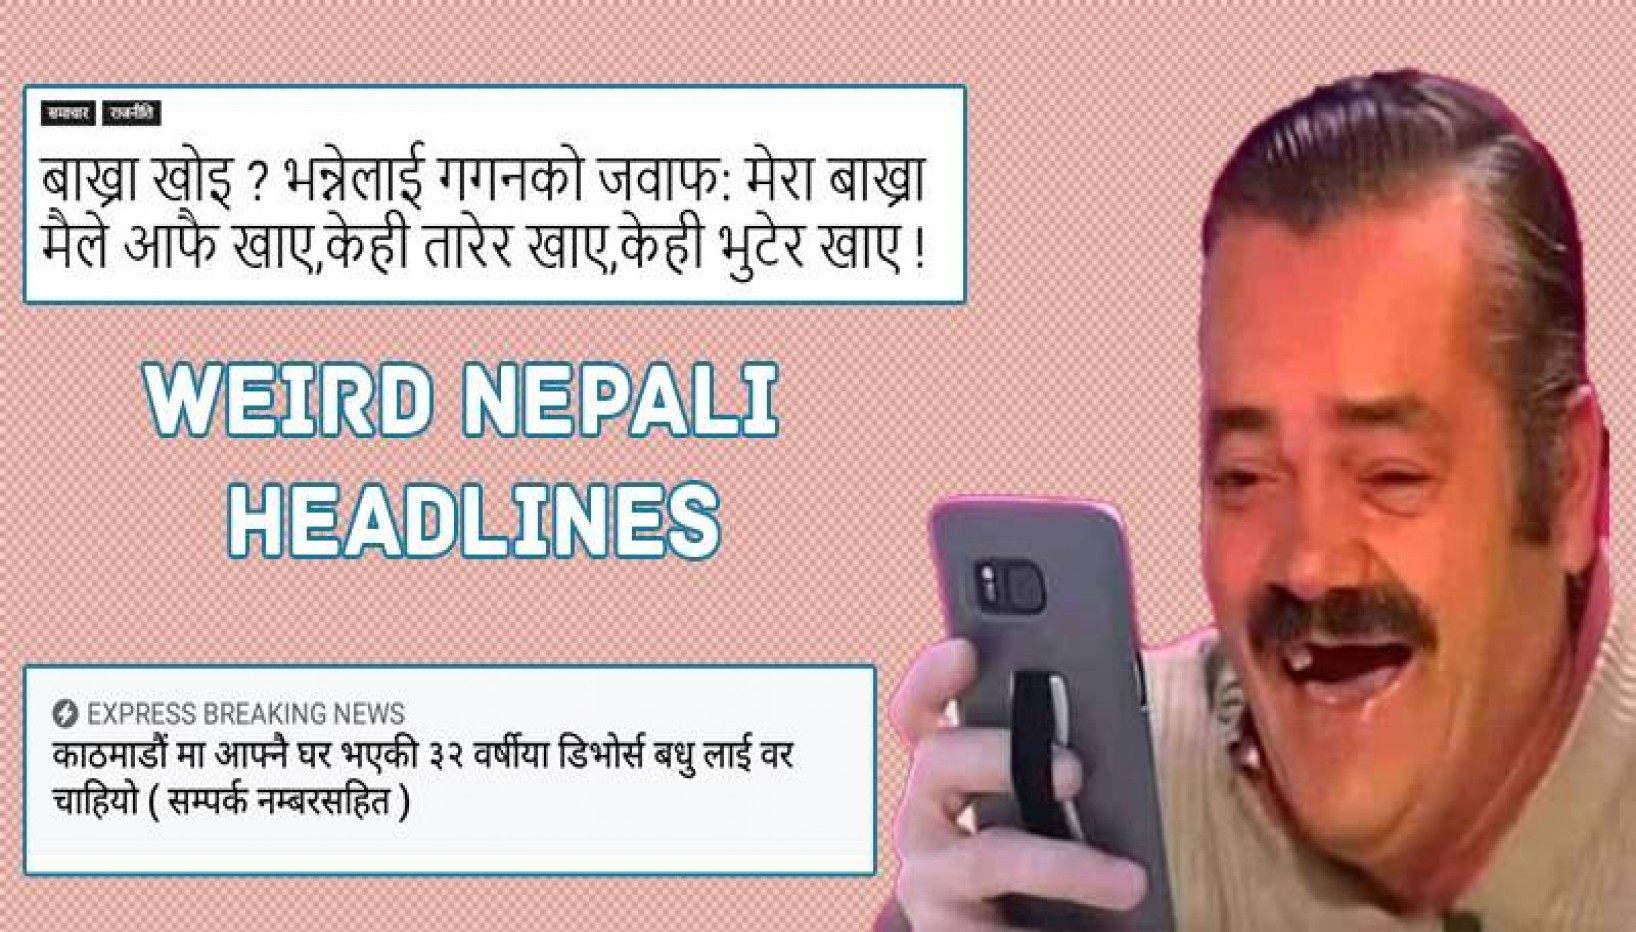 10 Strangest Nepali Headlines That Will Have You Scratching Your Head